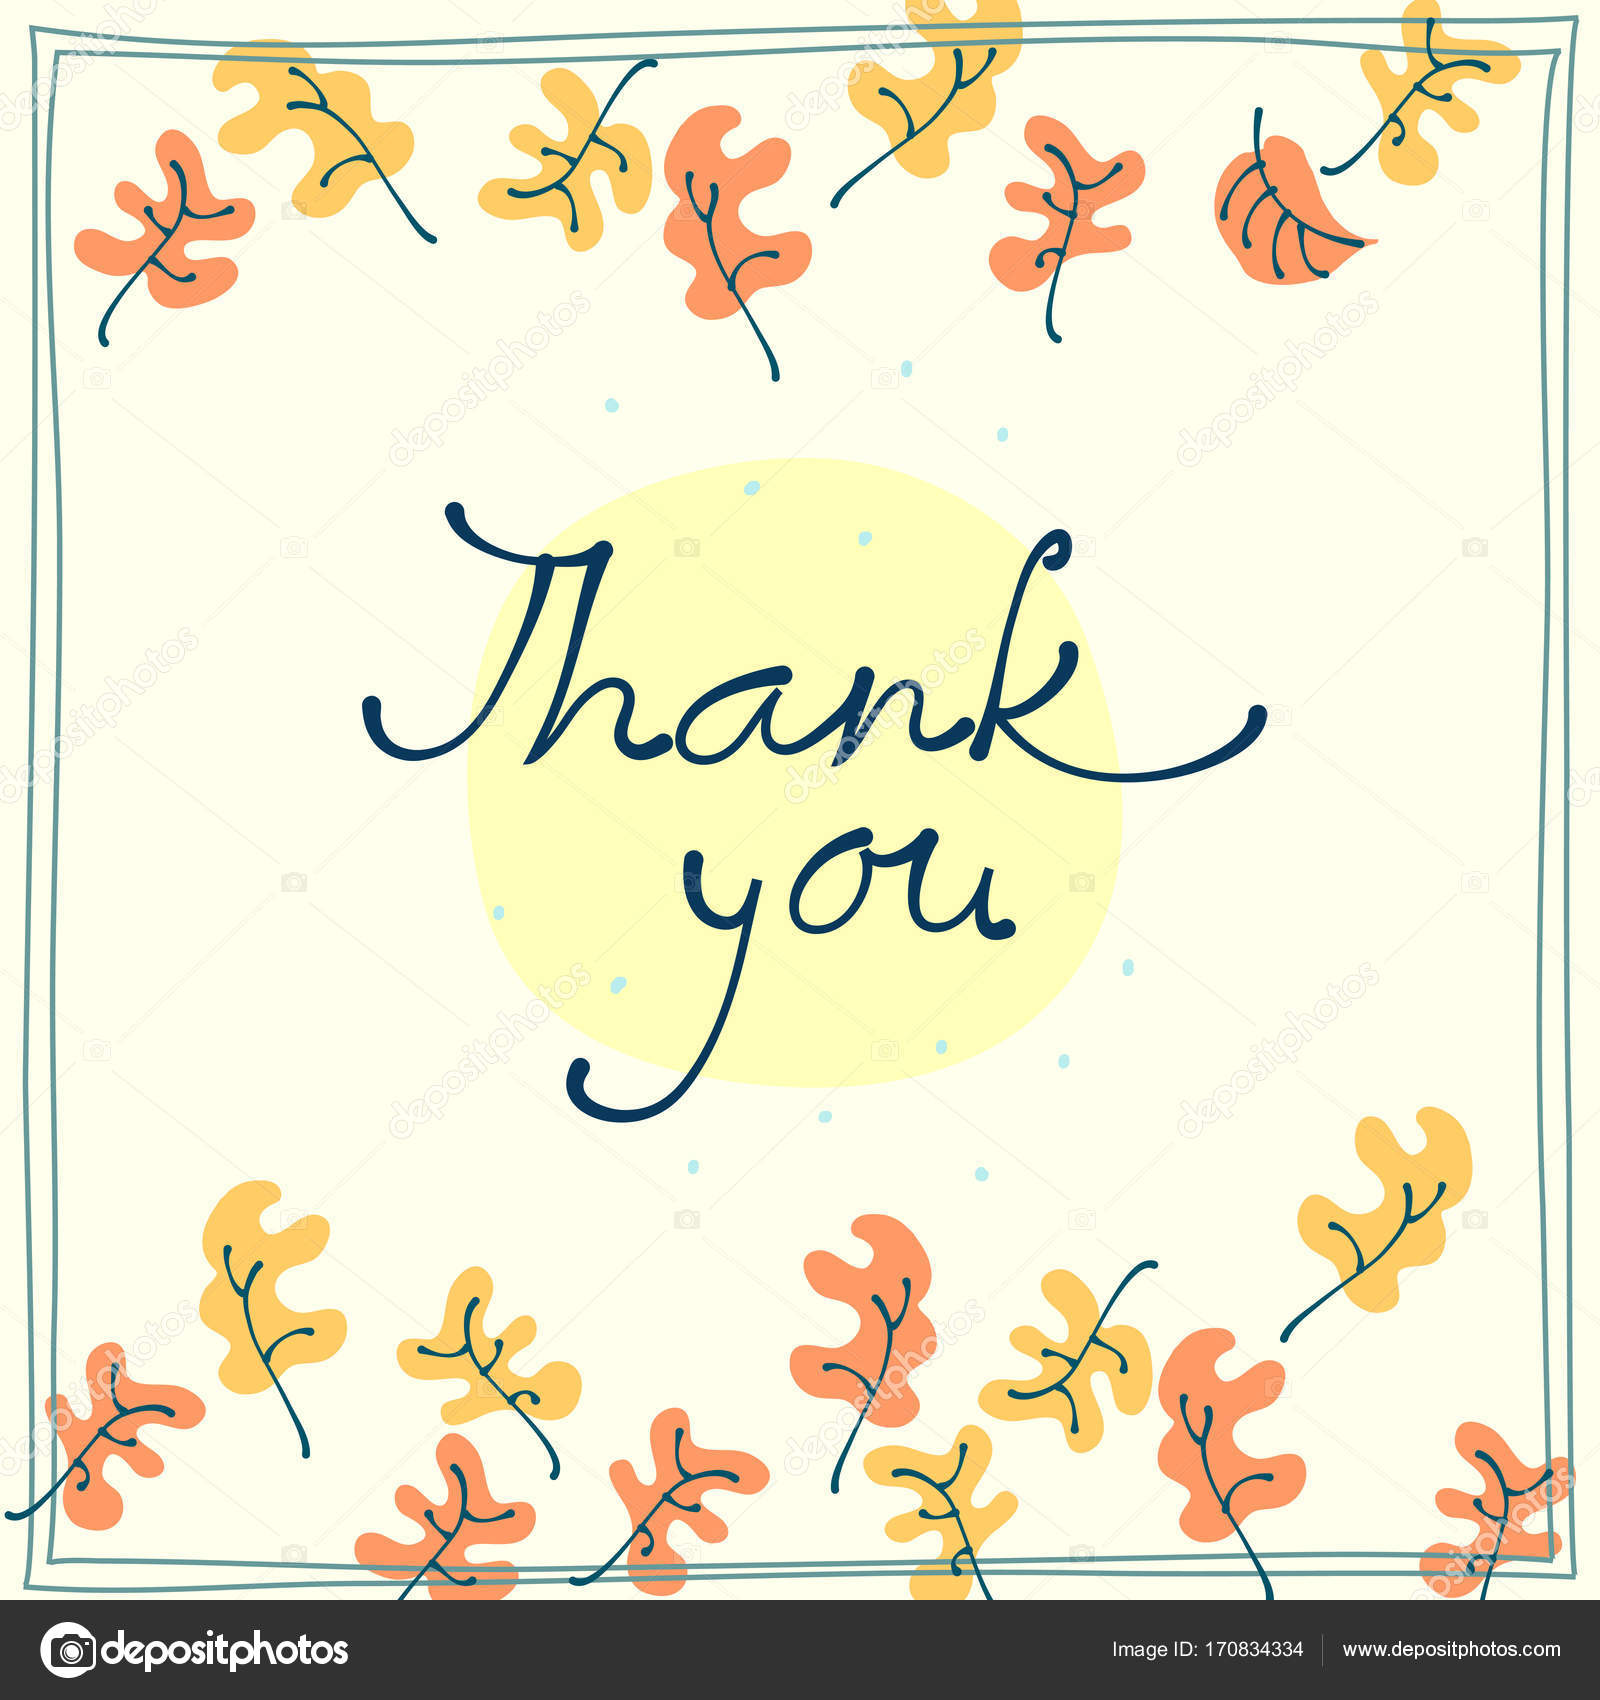 Thank you card design template simple greeting card autumn motif thank you card design template simple greeting card autumn motif stock vector spiritdancerdesigns Images